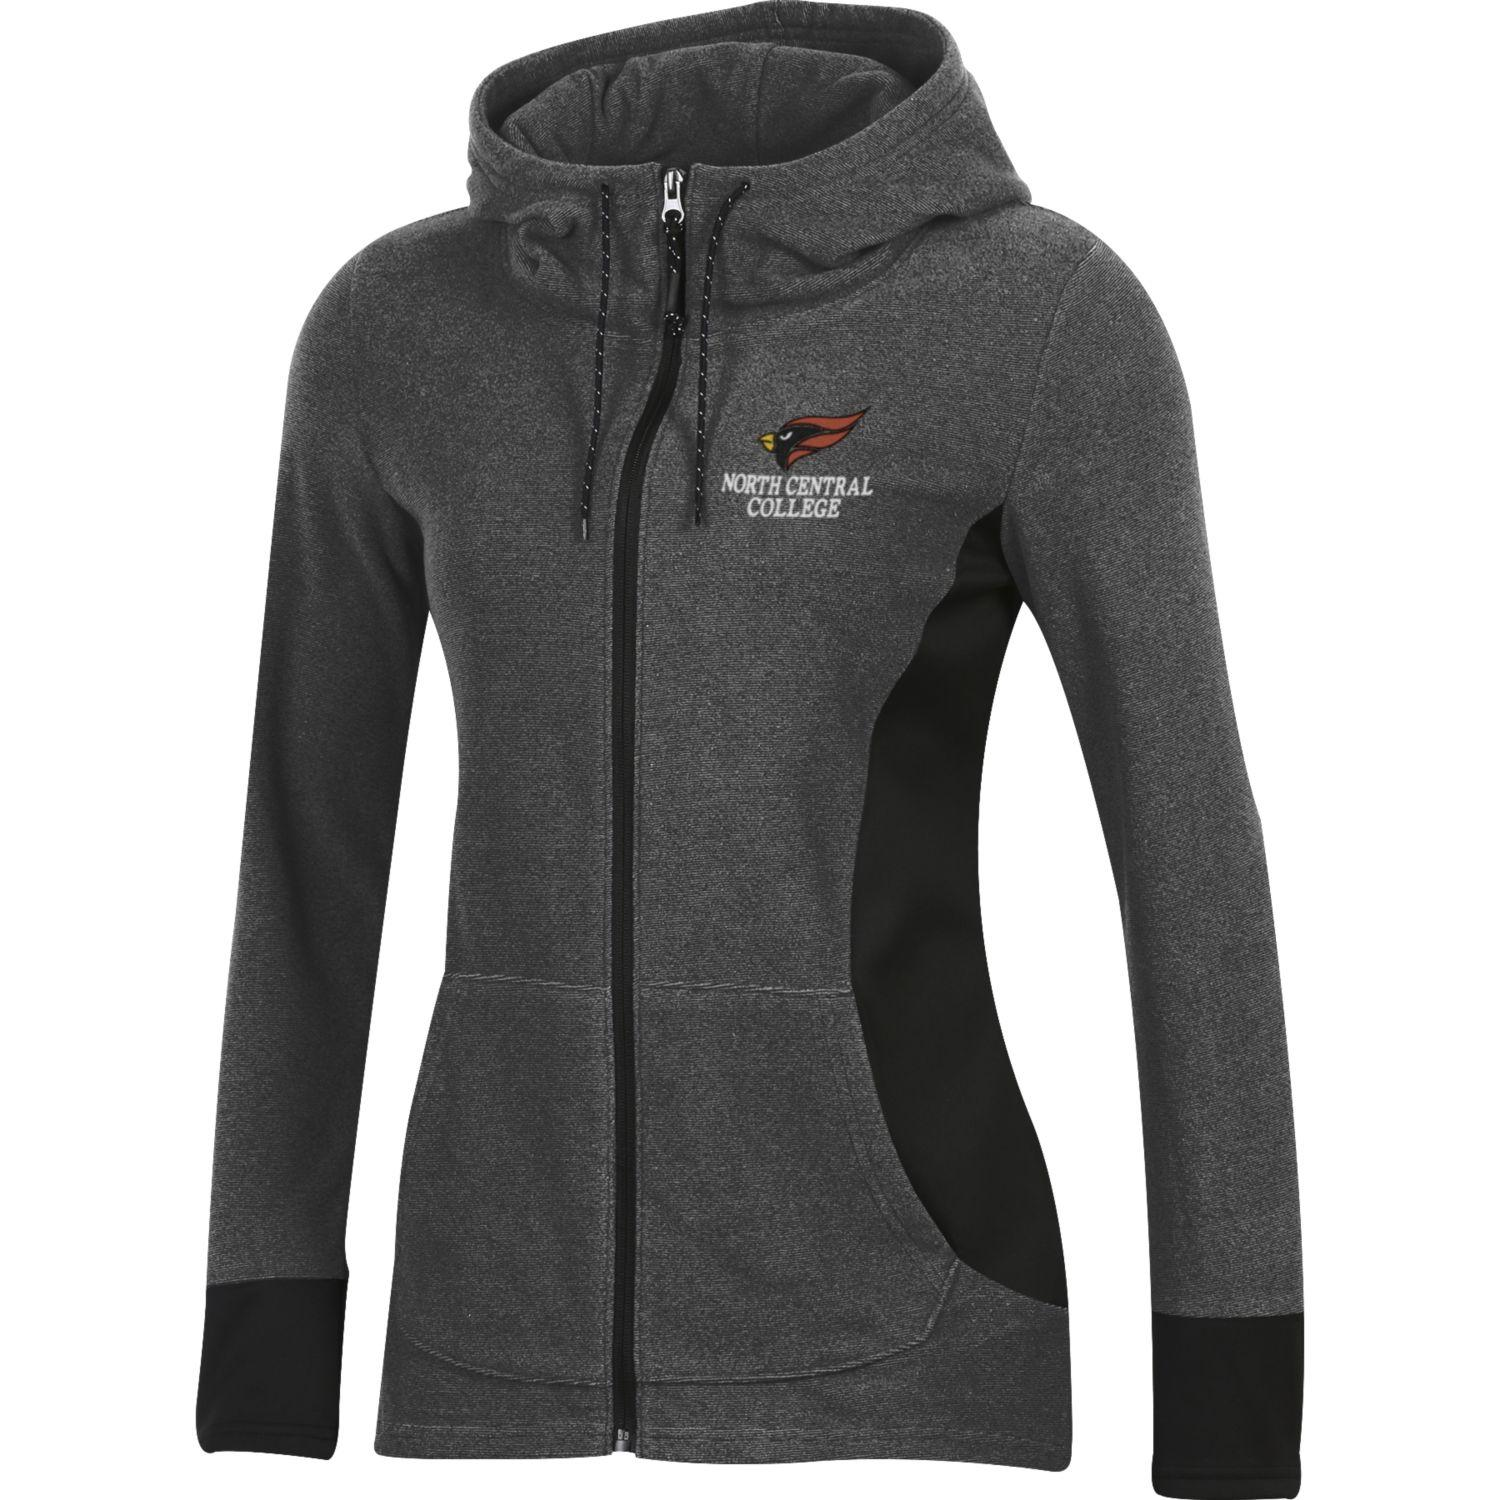 Image for the Women's Fair Weather Full Zip Hooded product